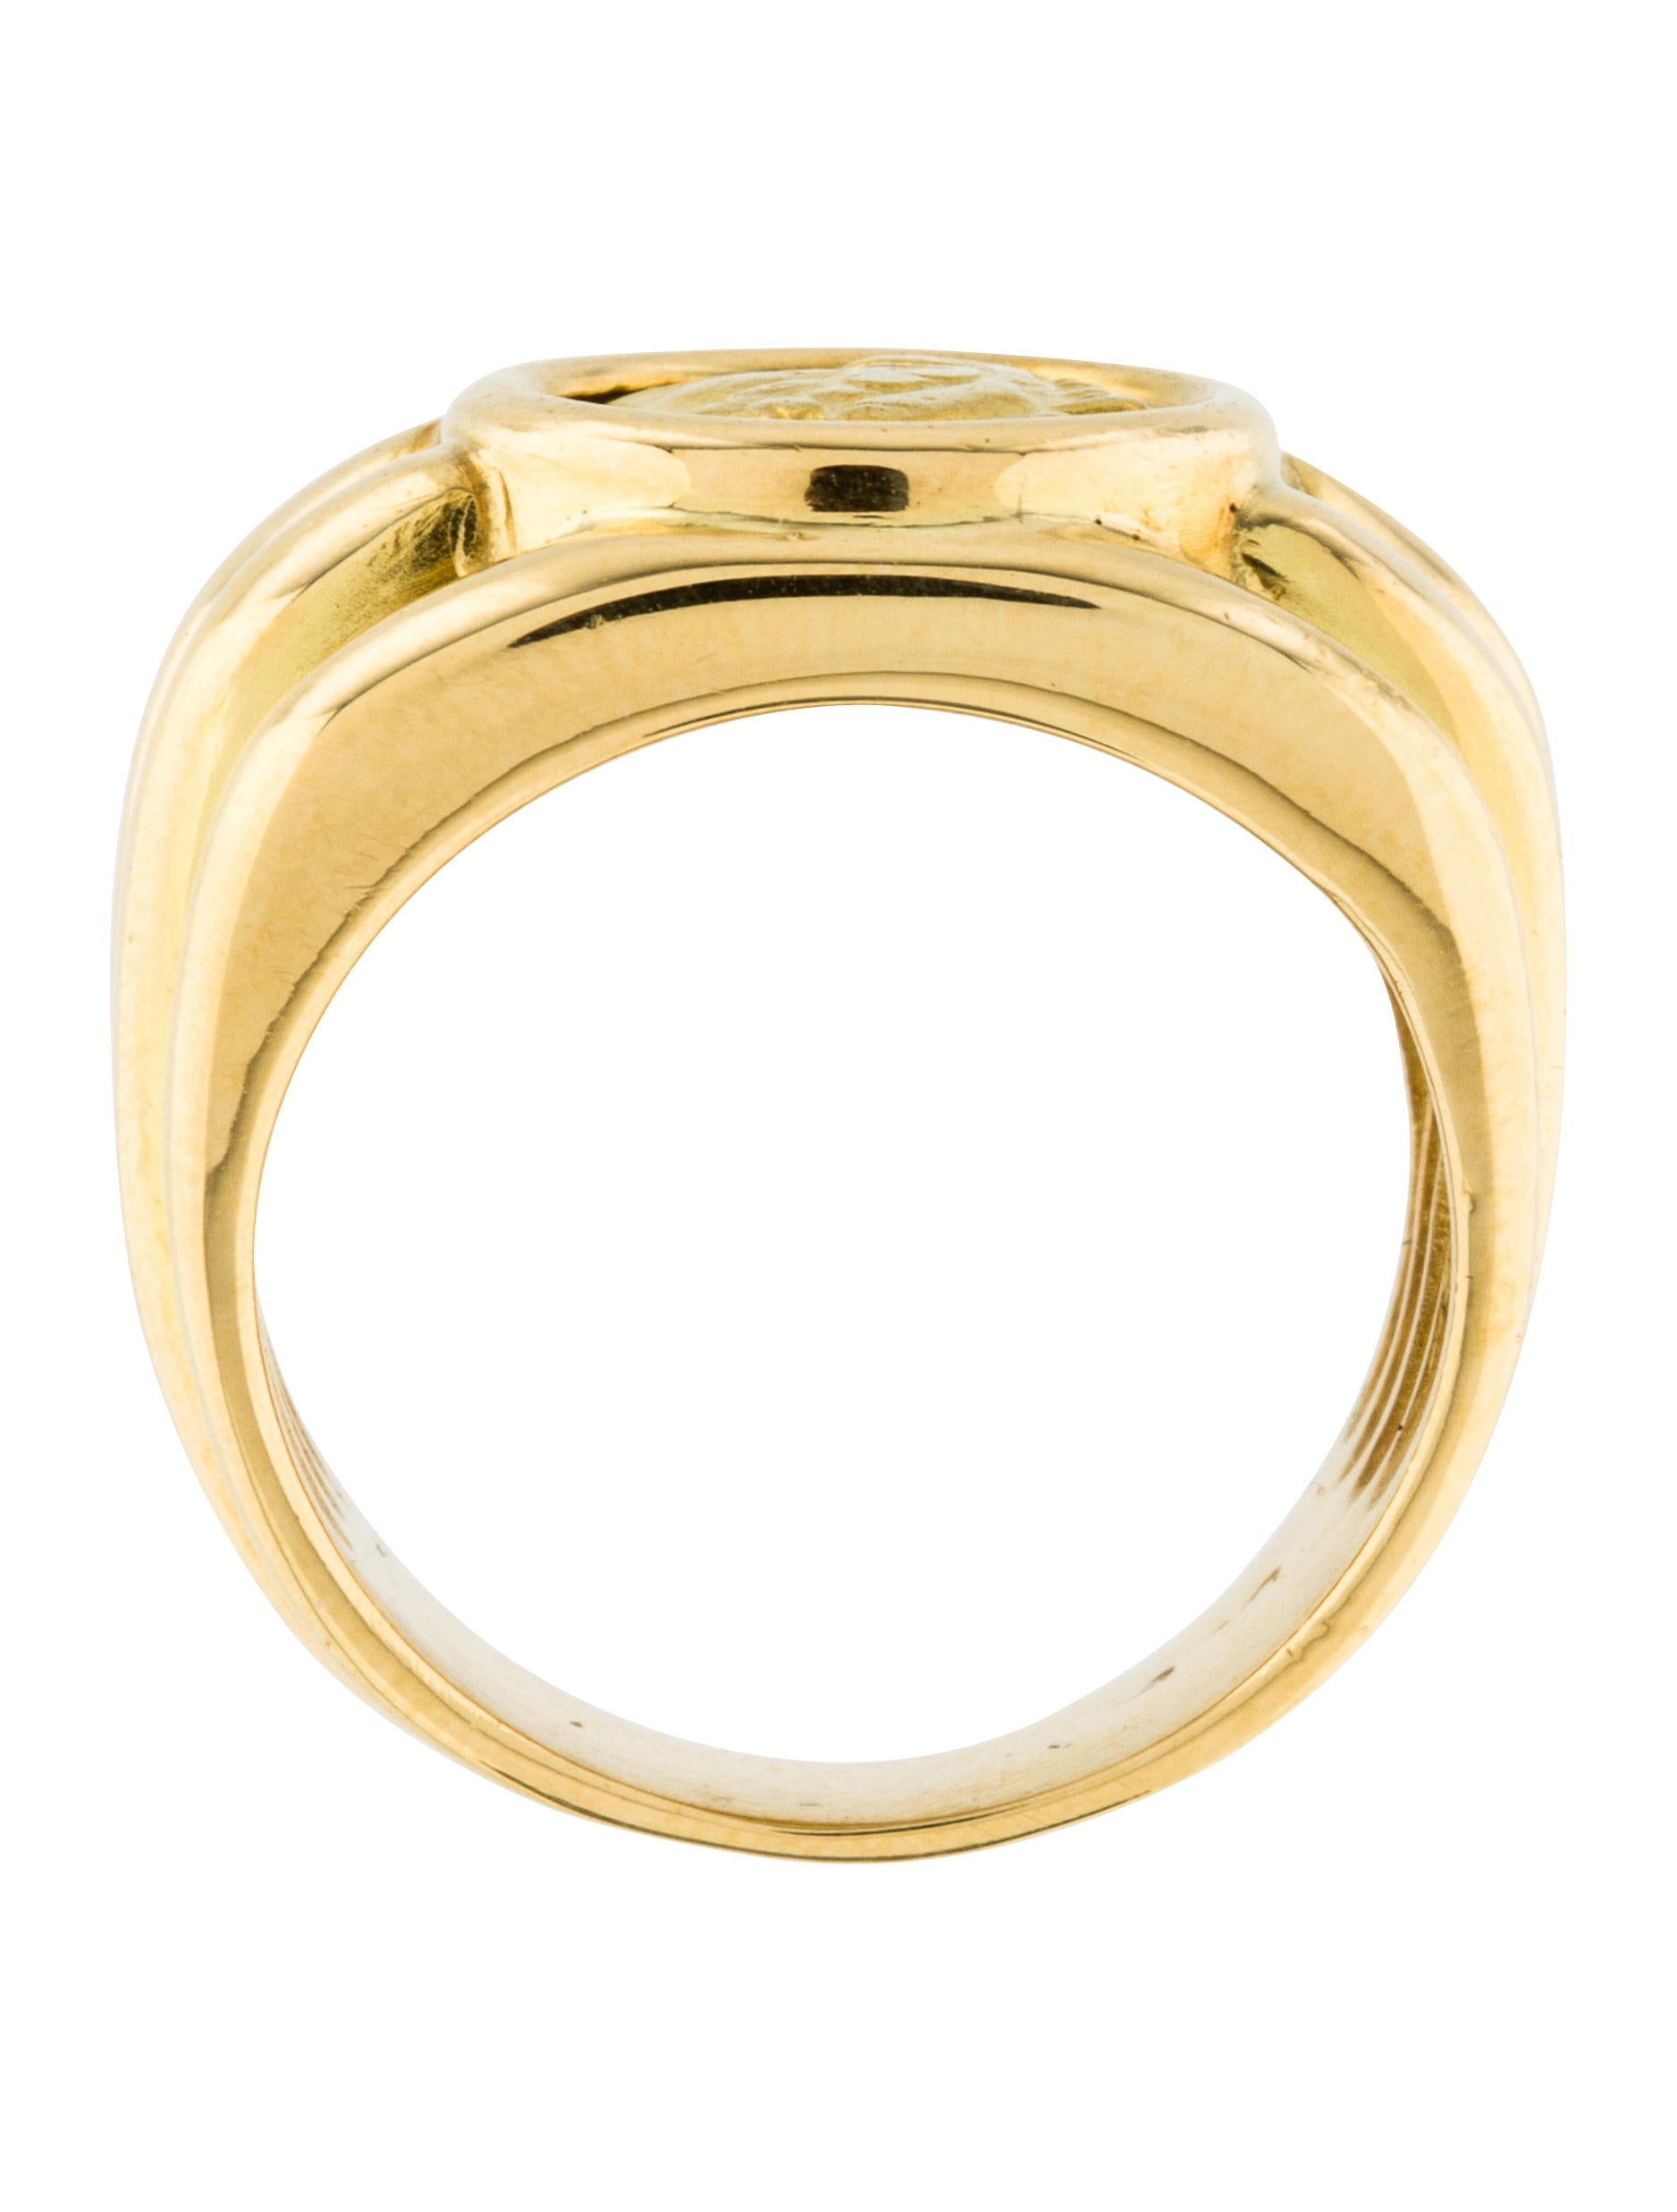 18k coin signet ring rings rring39923 the realreal